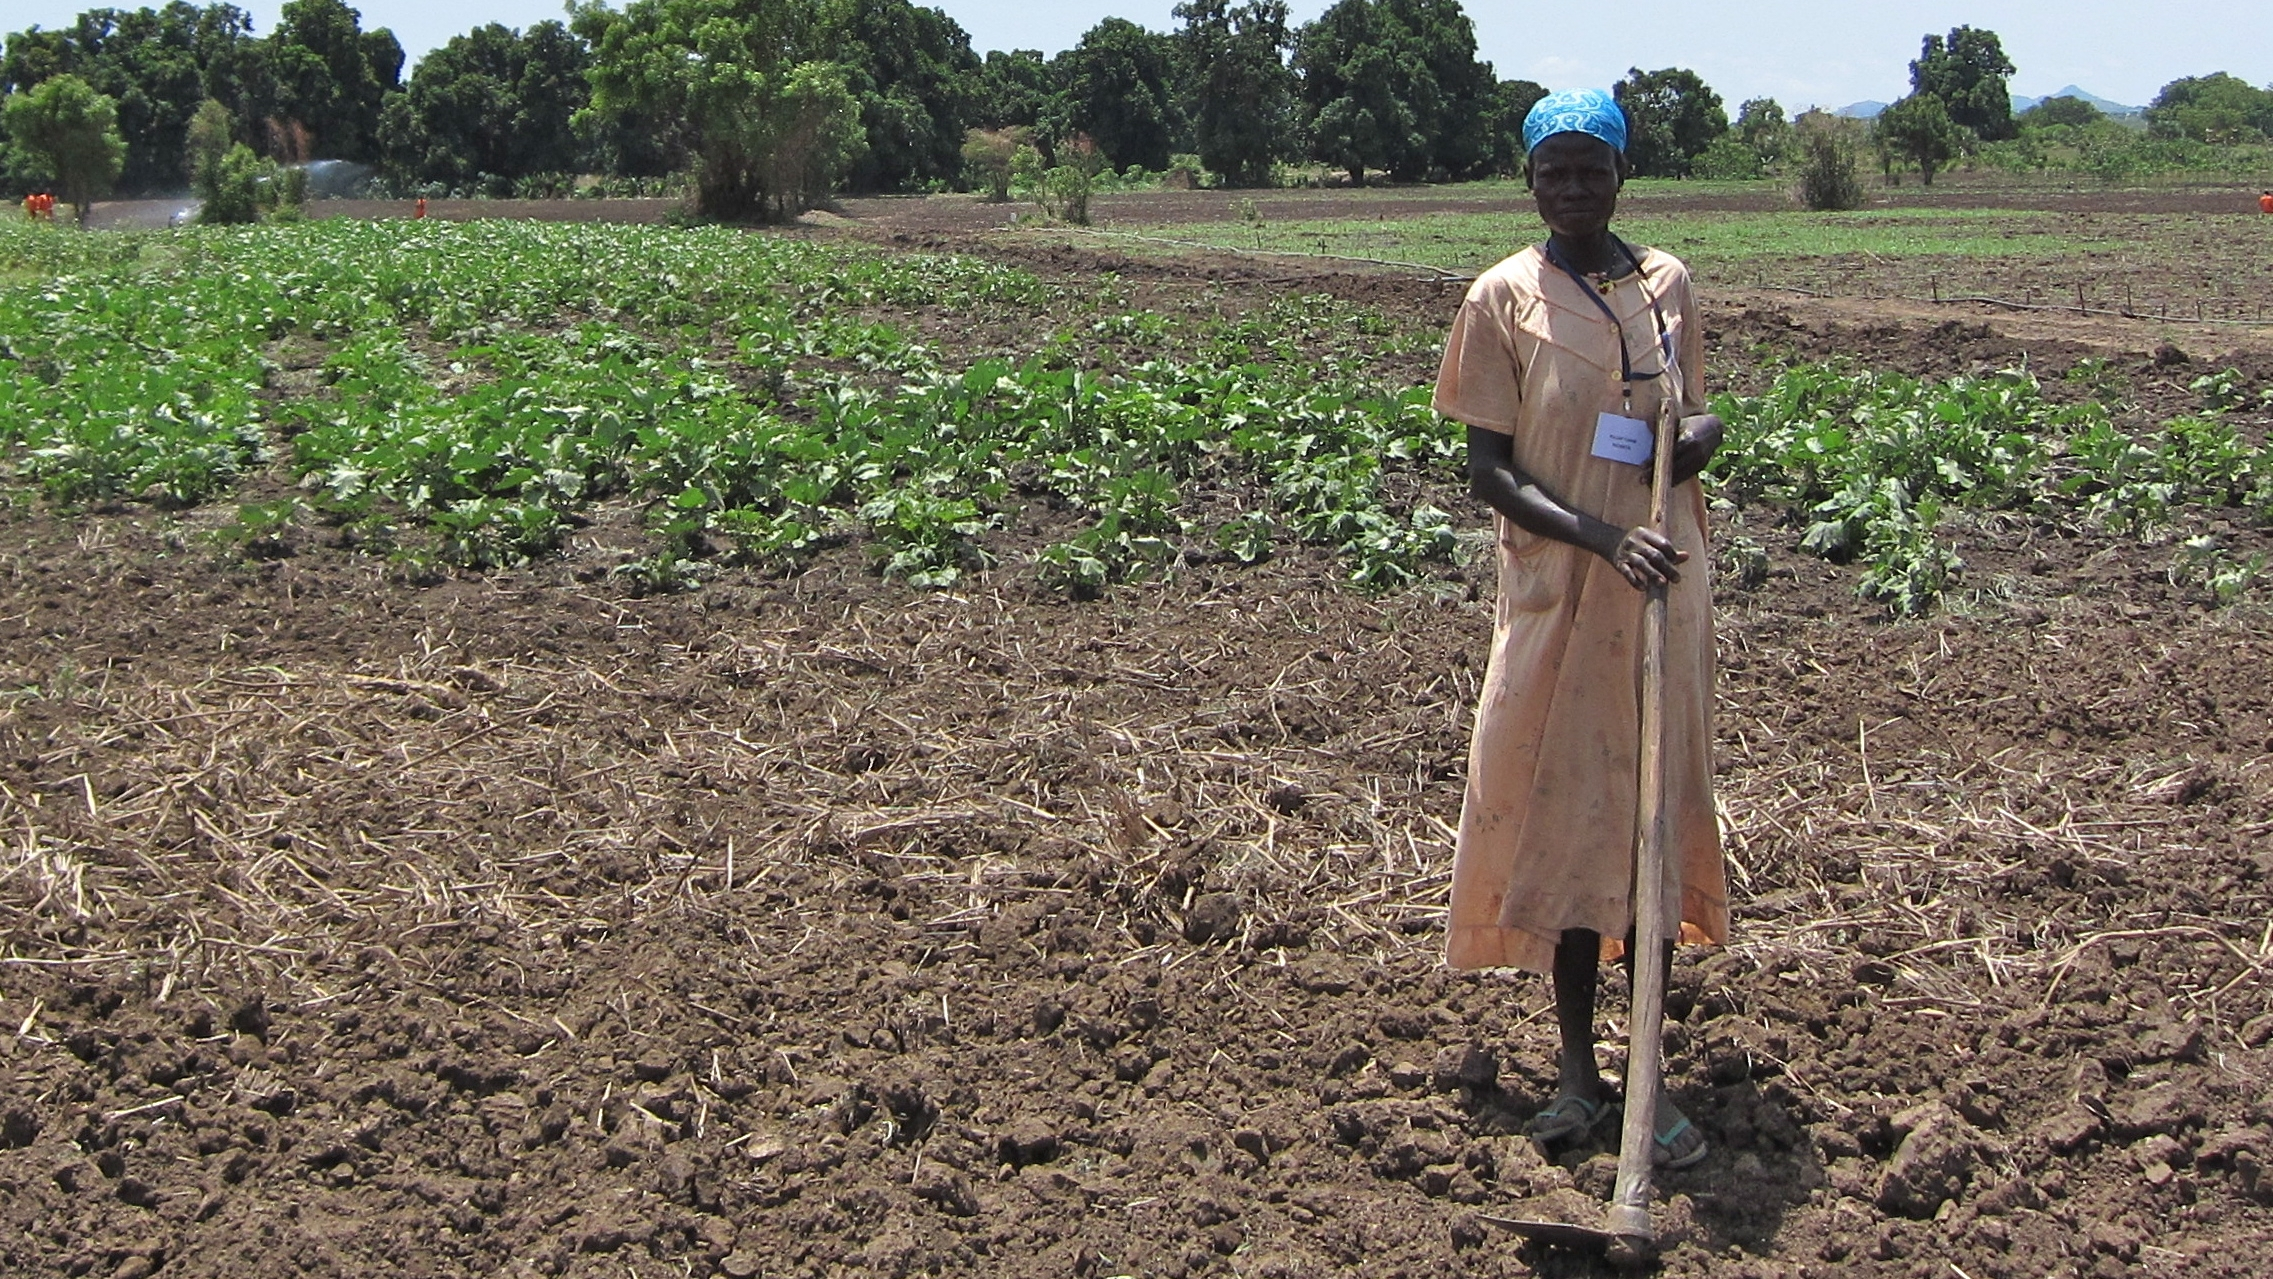 South Sudan agriculture